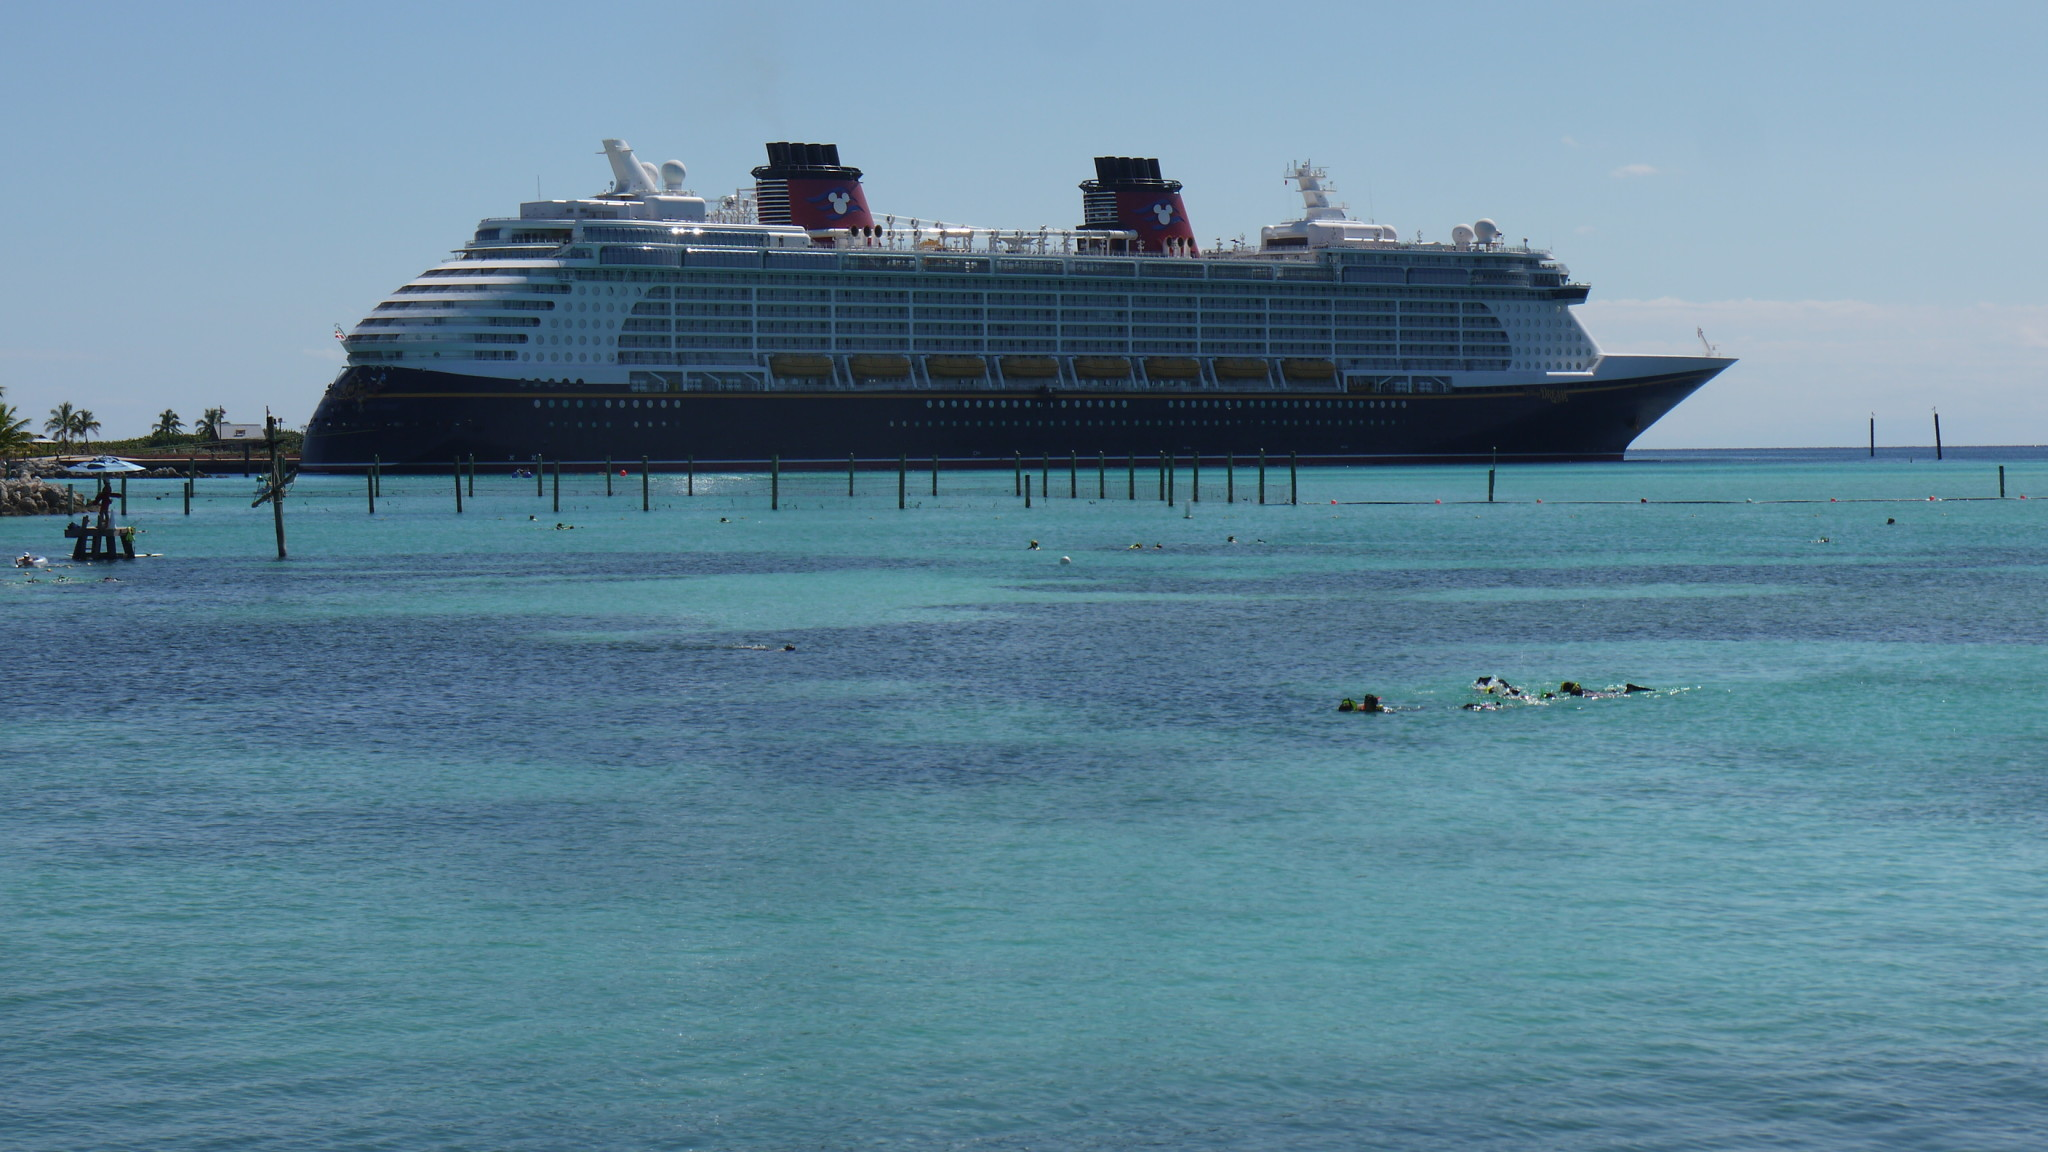 I Heard Disney Cruise Line Is Revising Their Check-in Procedures. How Does This Affect Me?